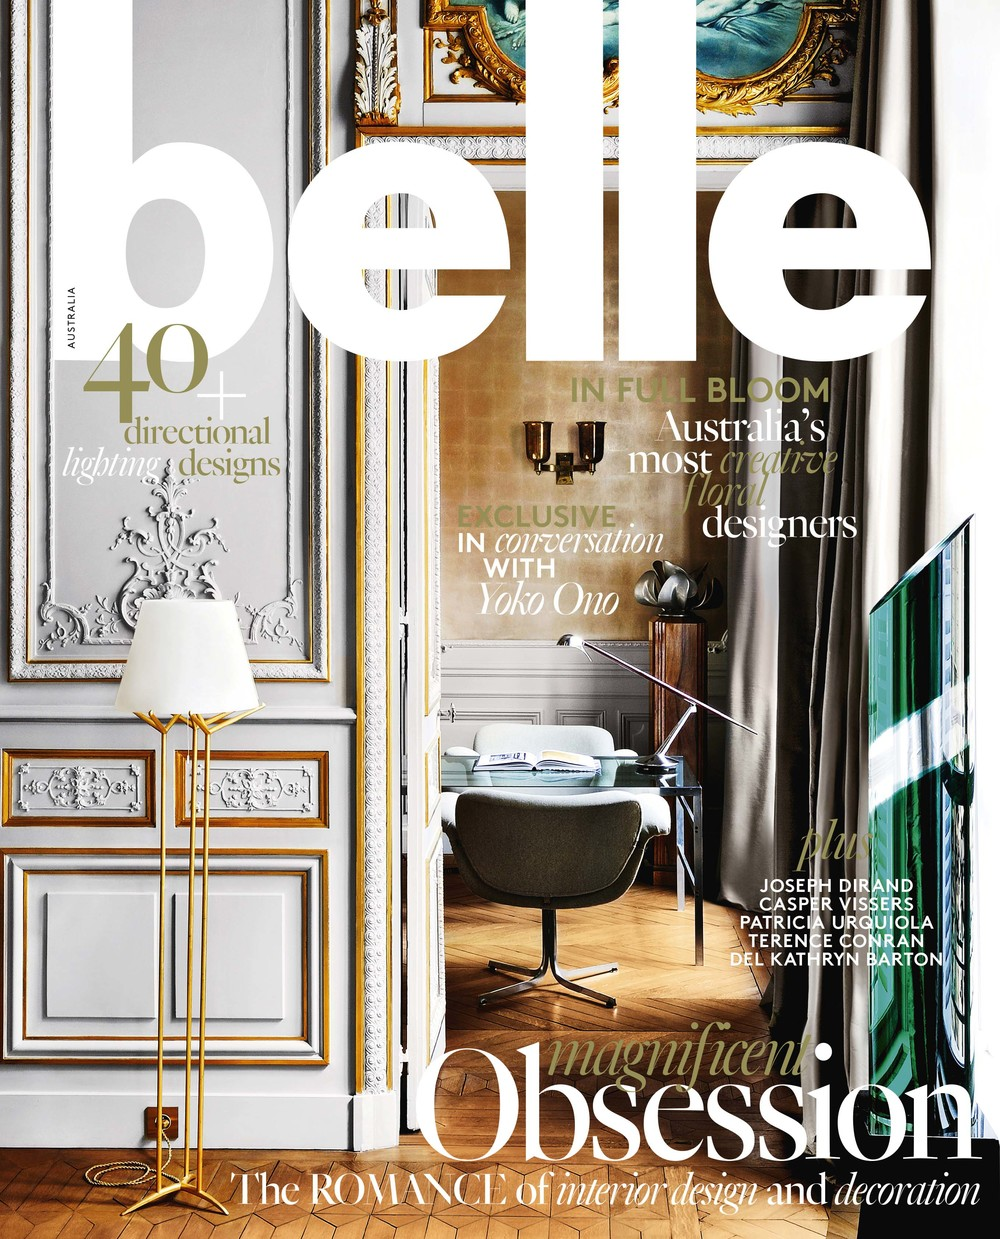 Belle Feb-March 2014, Cover.jpg